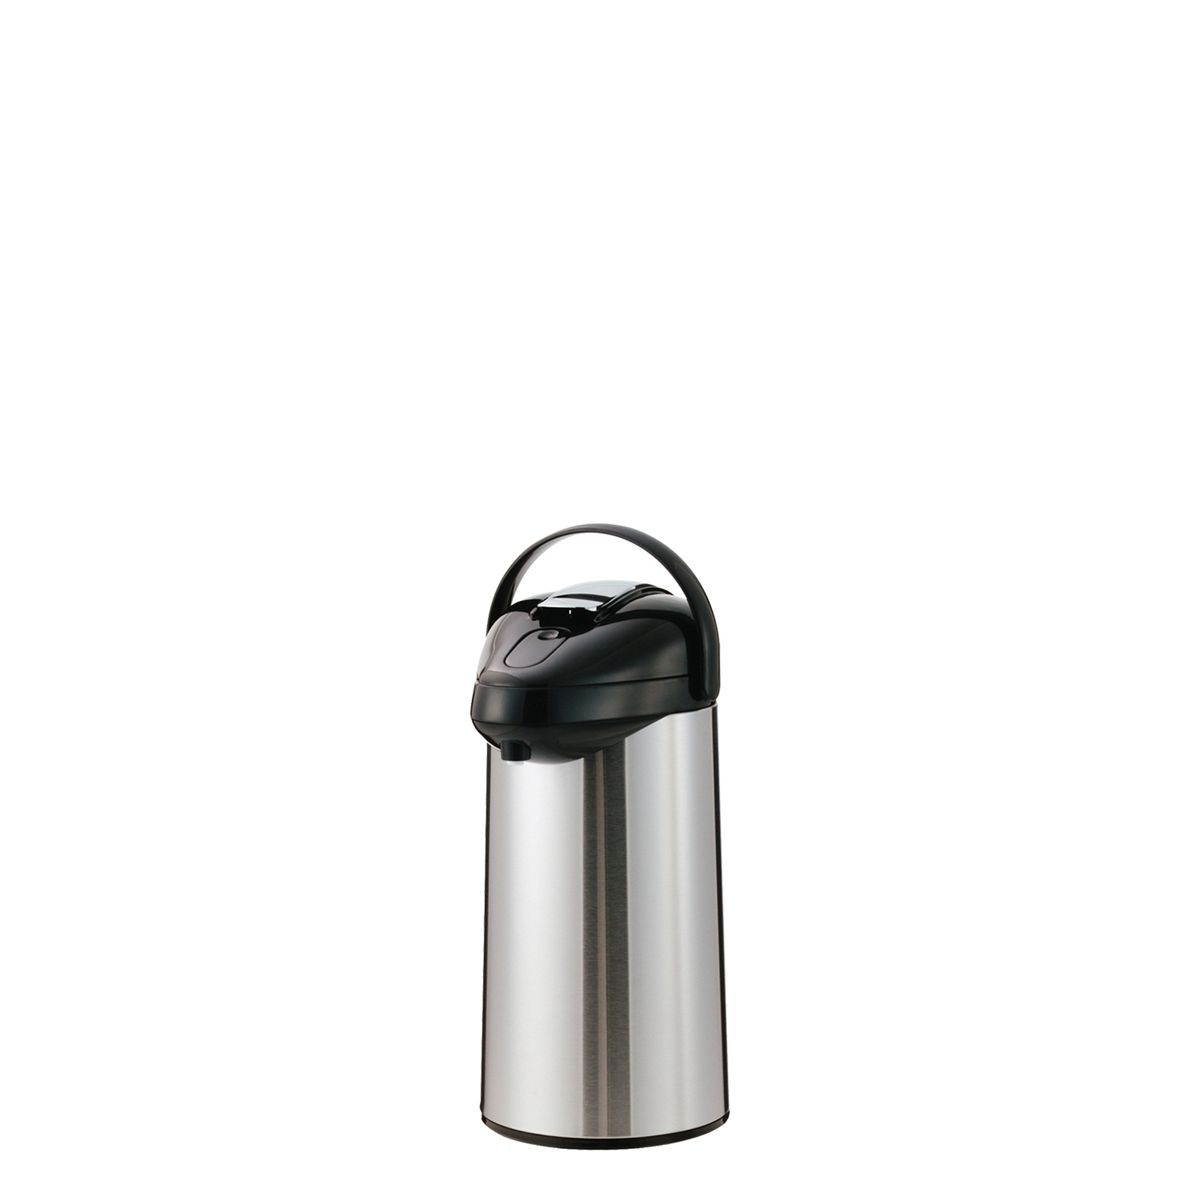 Service Ideas GLAL220 Premium Airpot with Lever Lid, 2.2 Liter